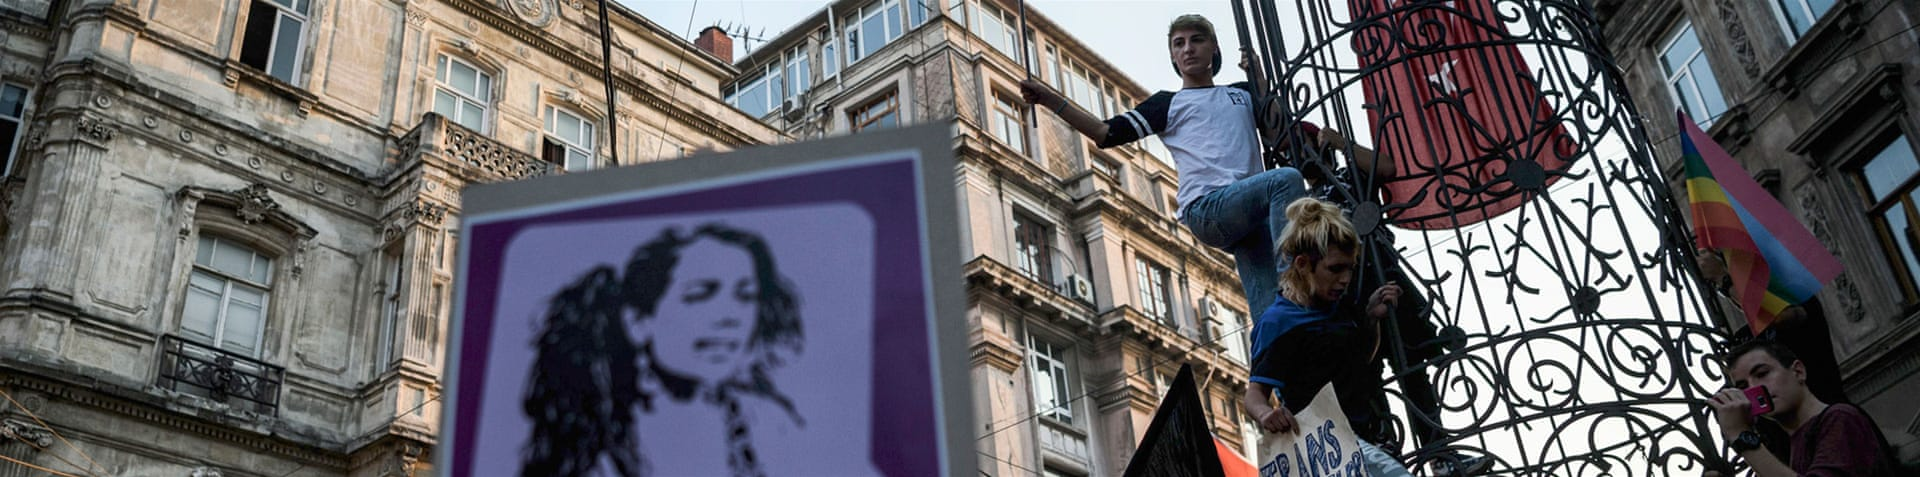 More than 200 demonstrators carried banners saying 'Justice for Hande Kader' and 'Let's fight for our survival' [Ozan Kose/AFP]